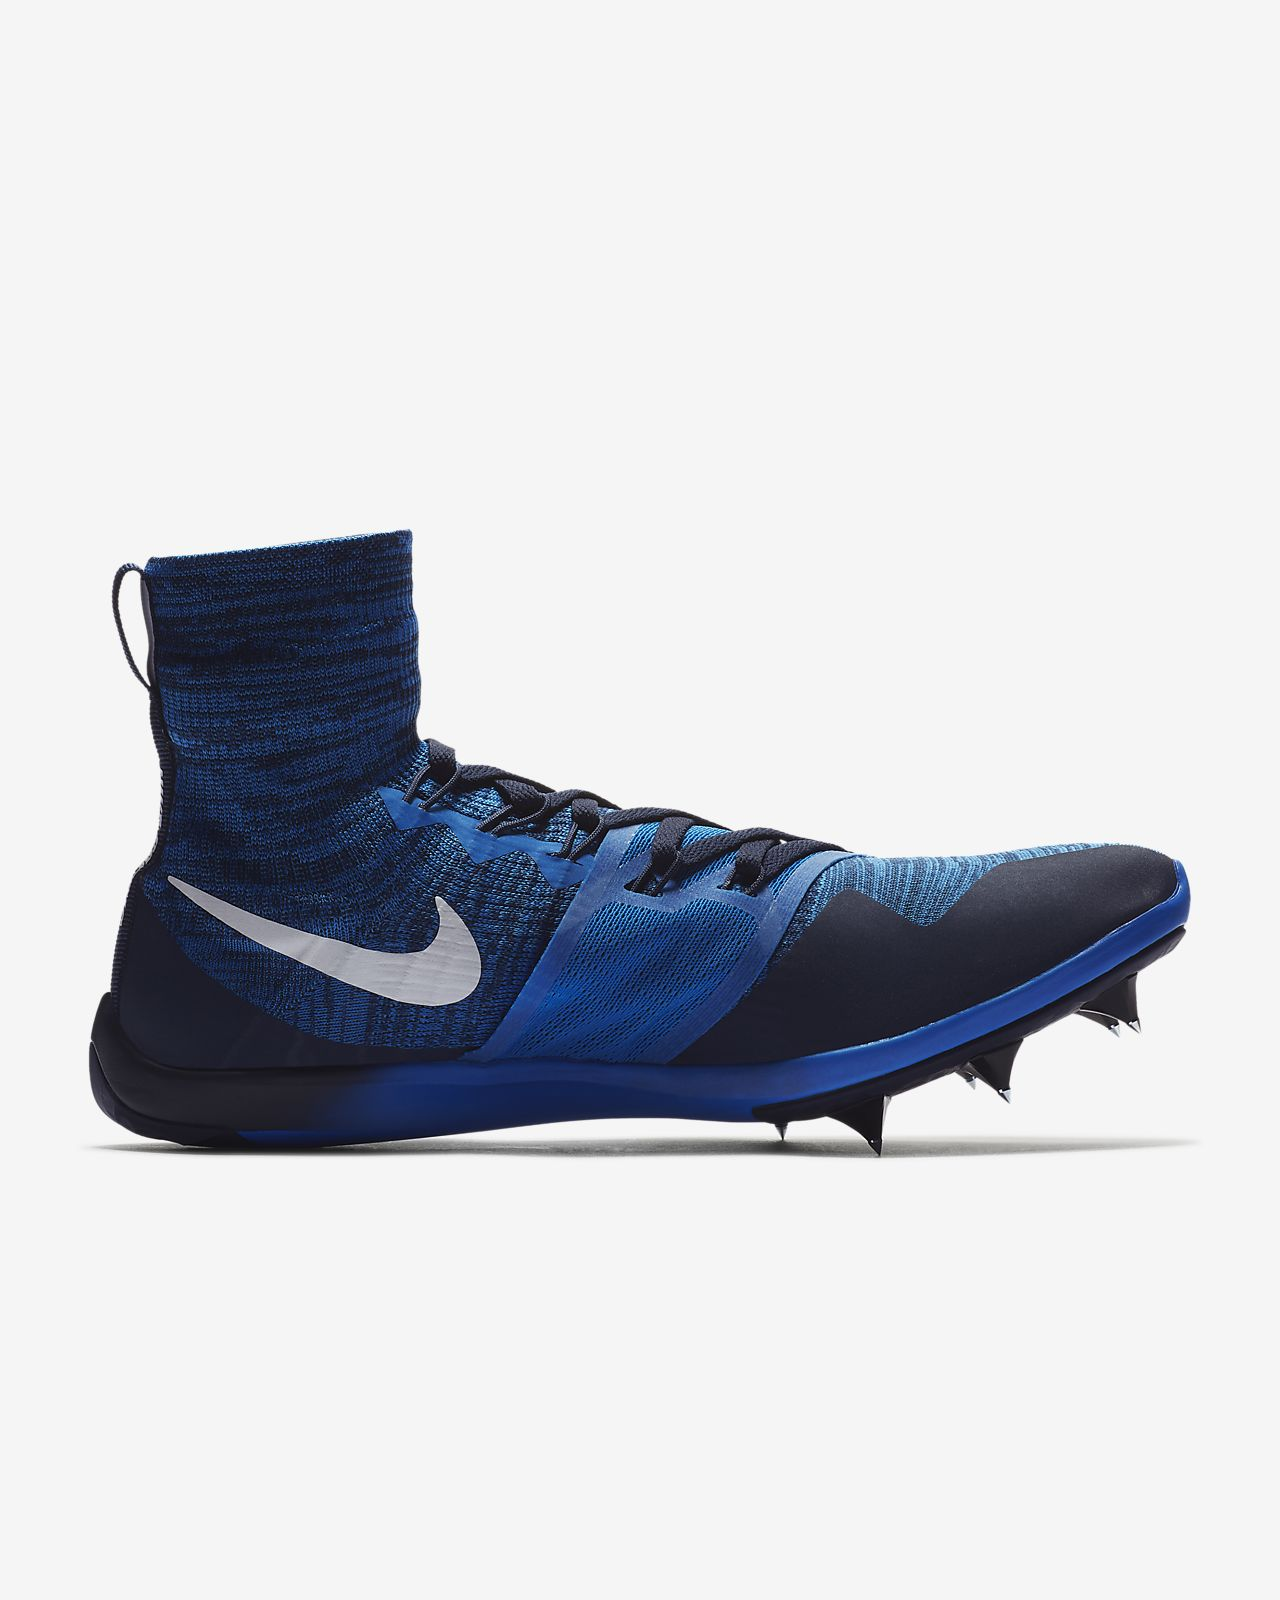 competitive price d94de e5533 ... Nike Zoom Victory 4 XC Unisex Track Spike